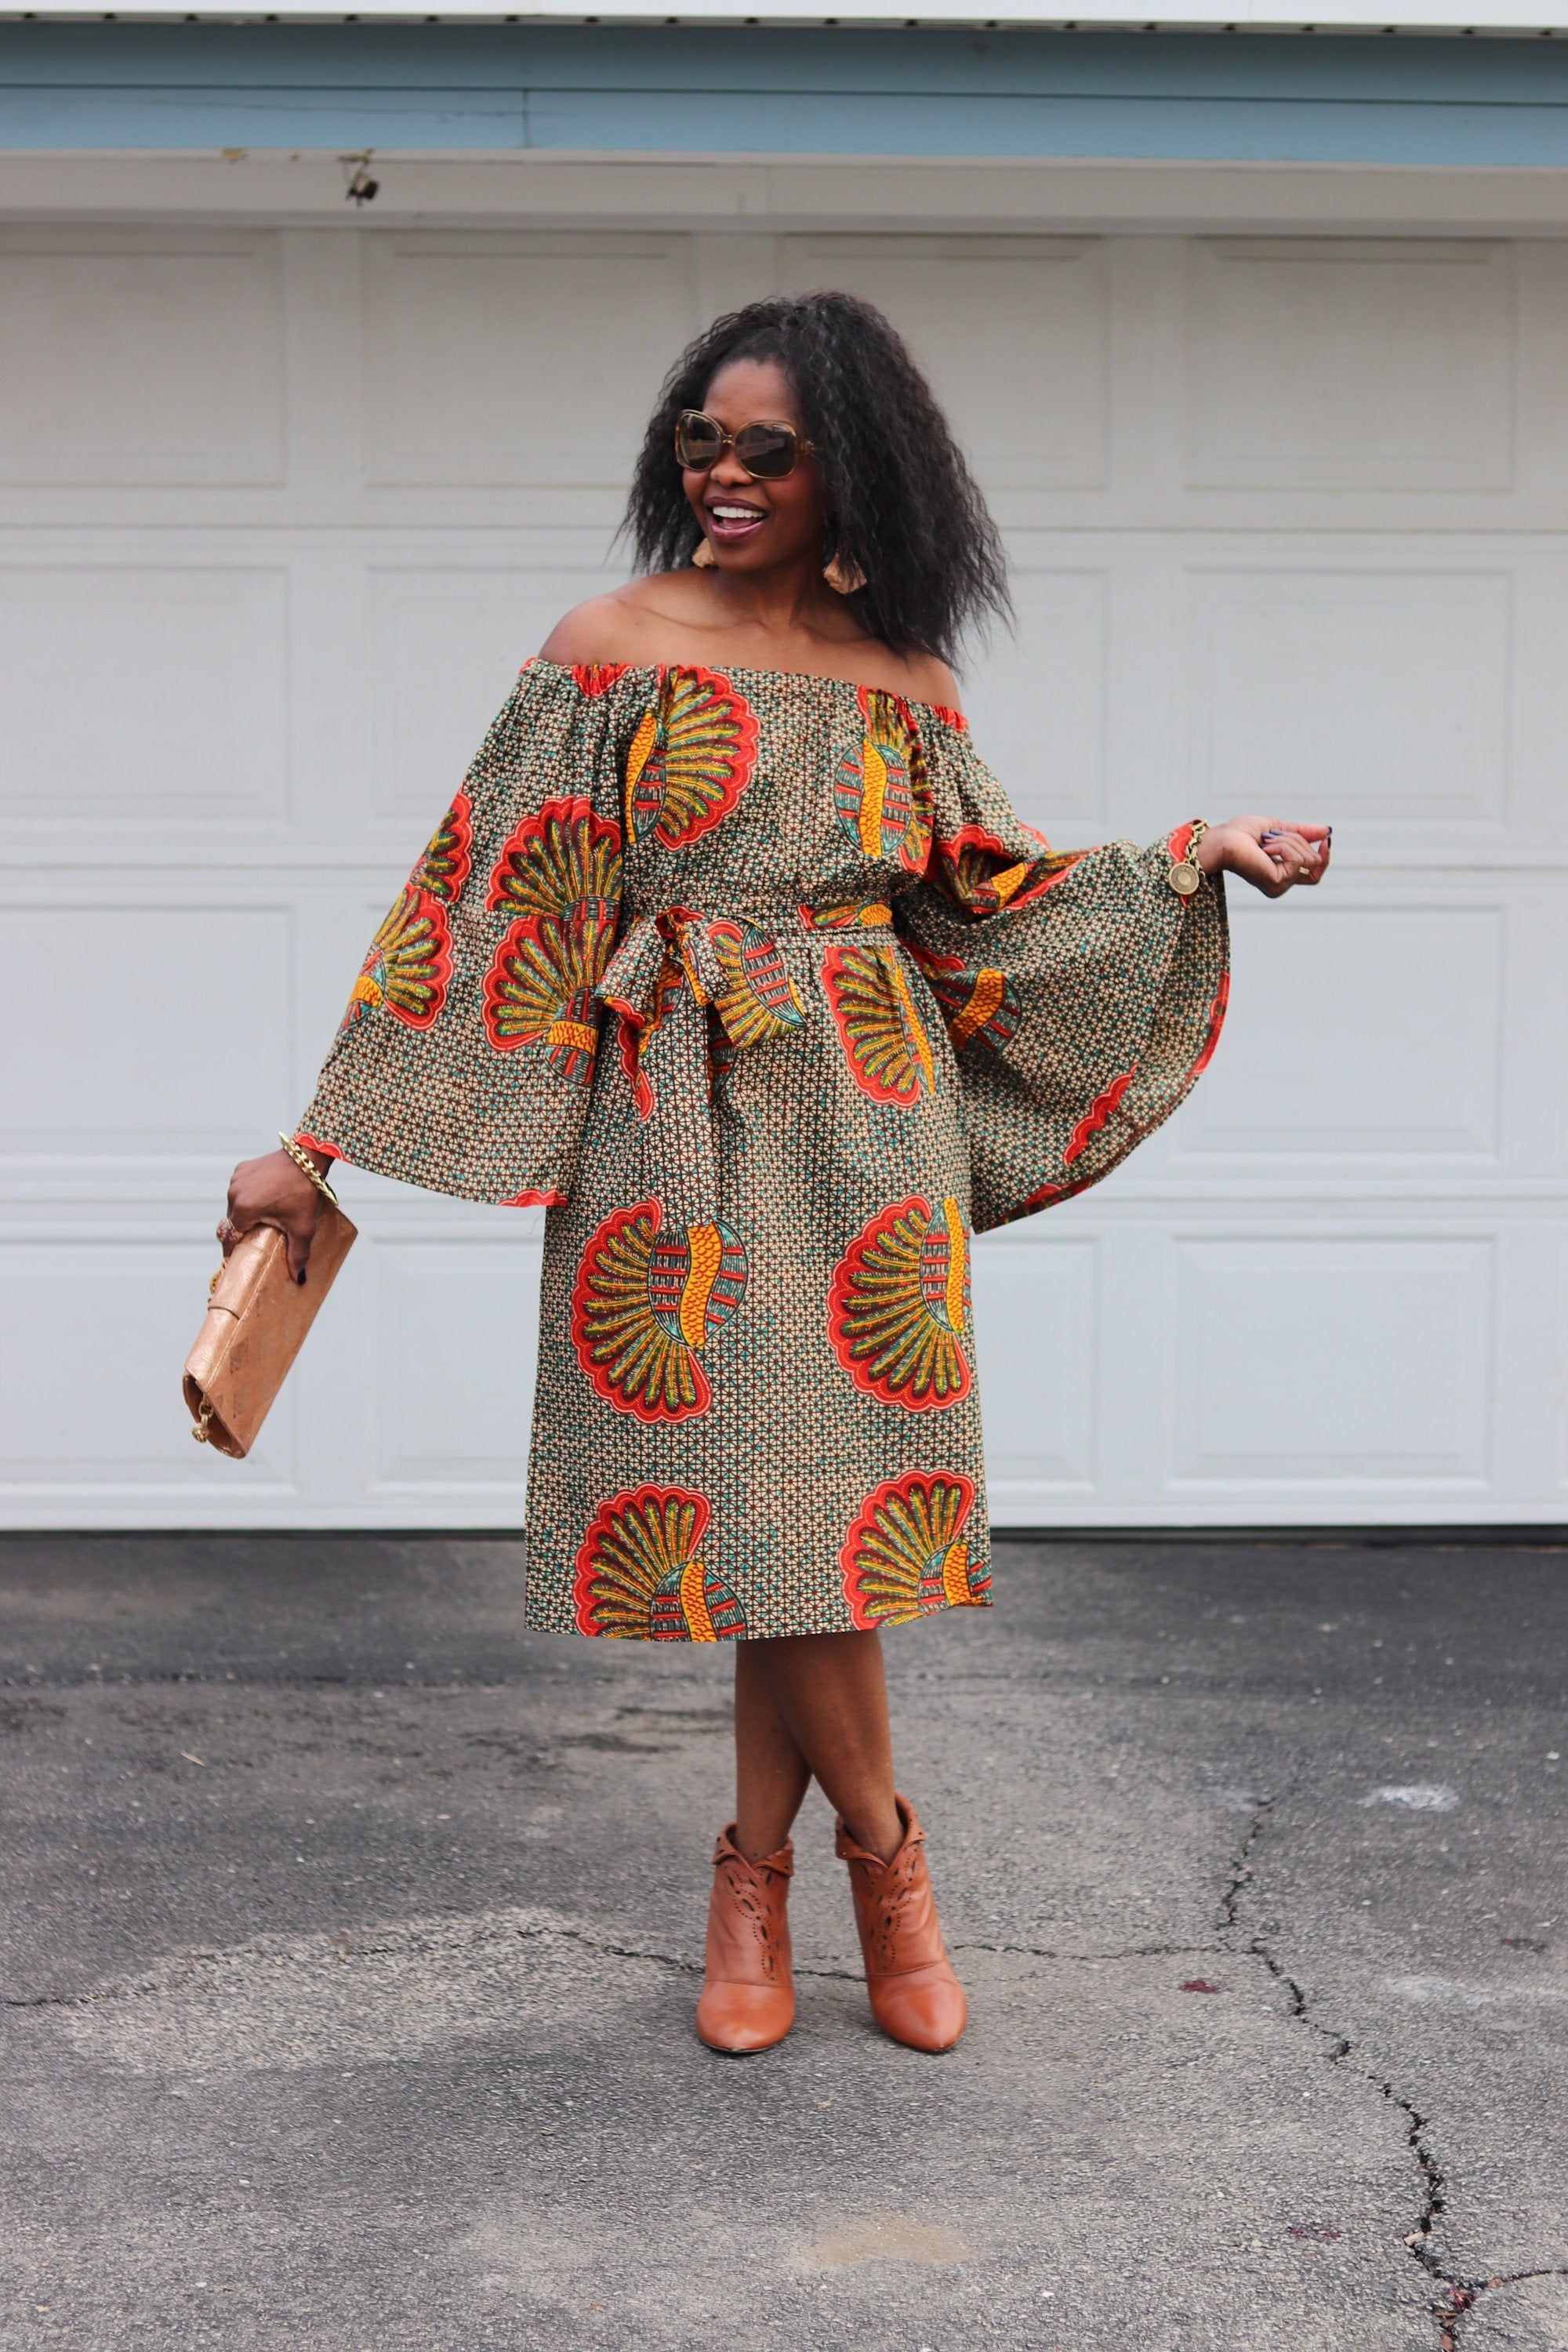 African Dresses, Ankara Dress, African Print Dress,  African Fashion, African Clothing, Off the Shoulder Dress #africanprintdresses